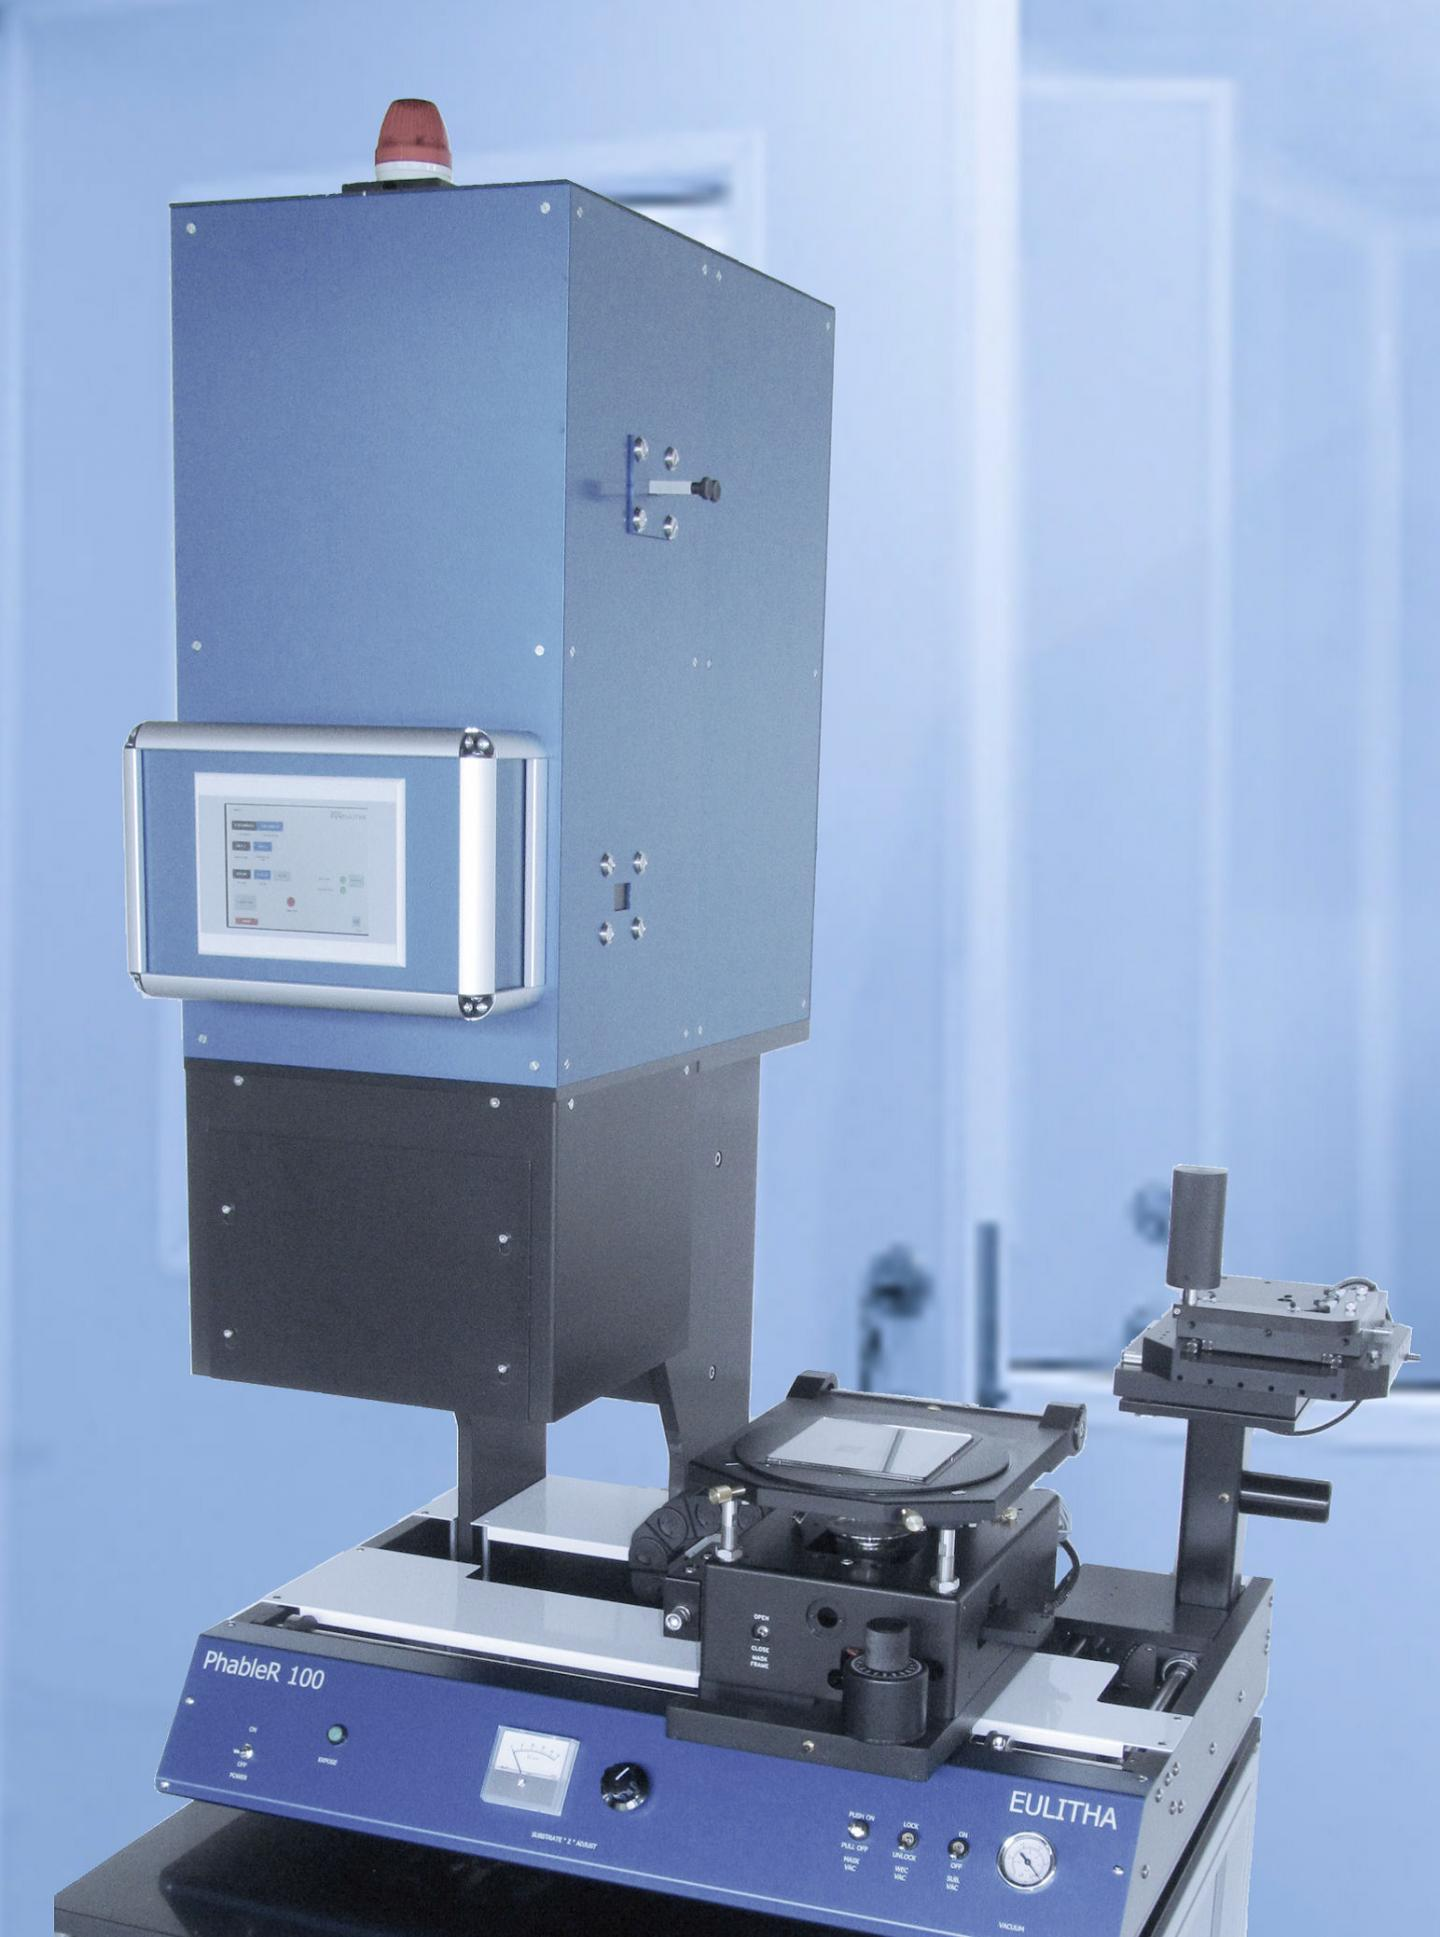 The PhableR 100 Nano-Lithography System